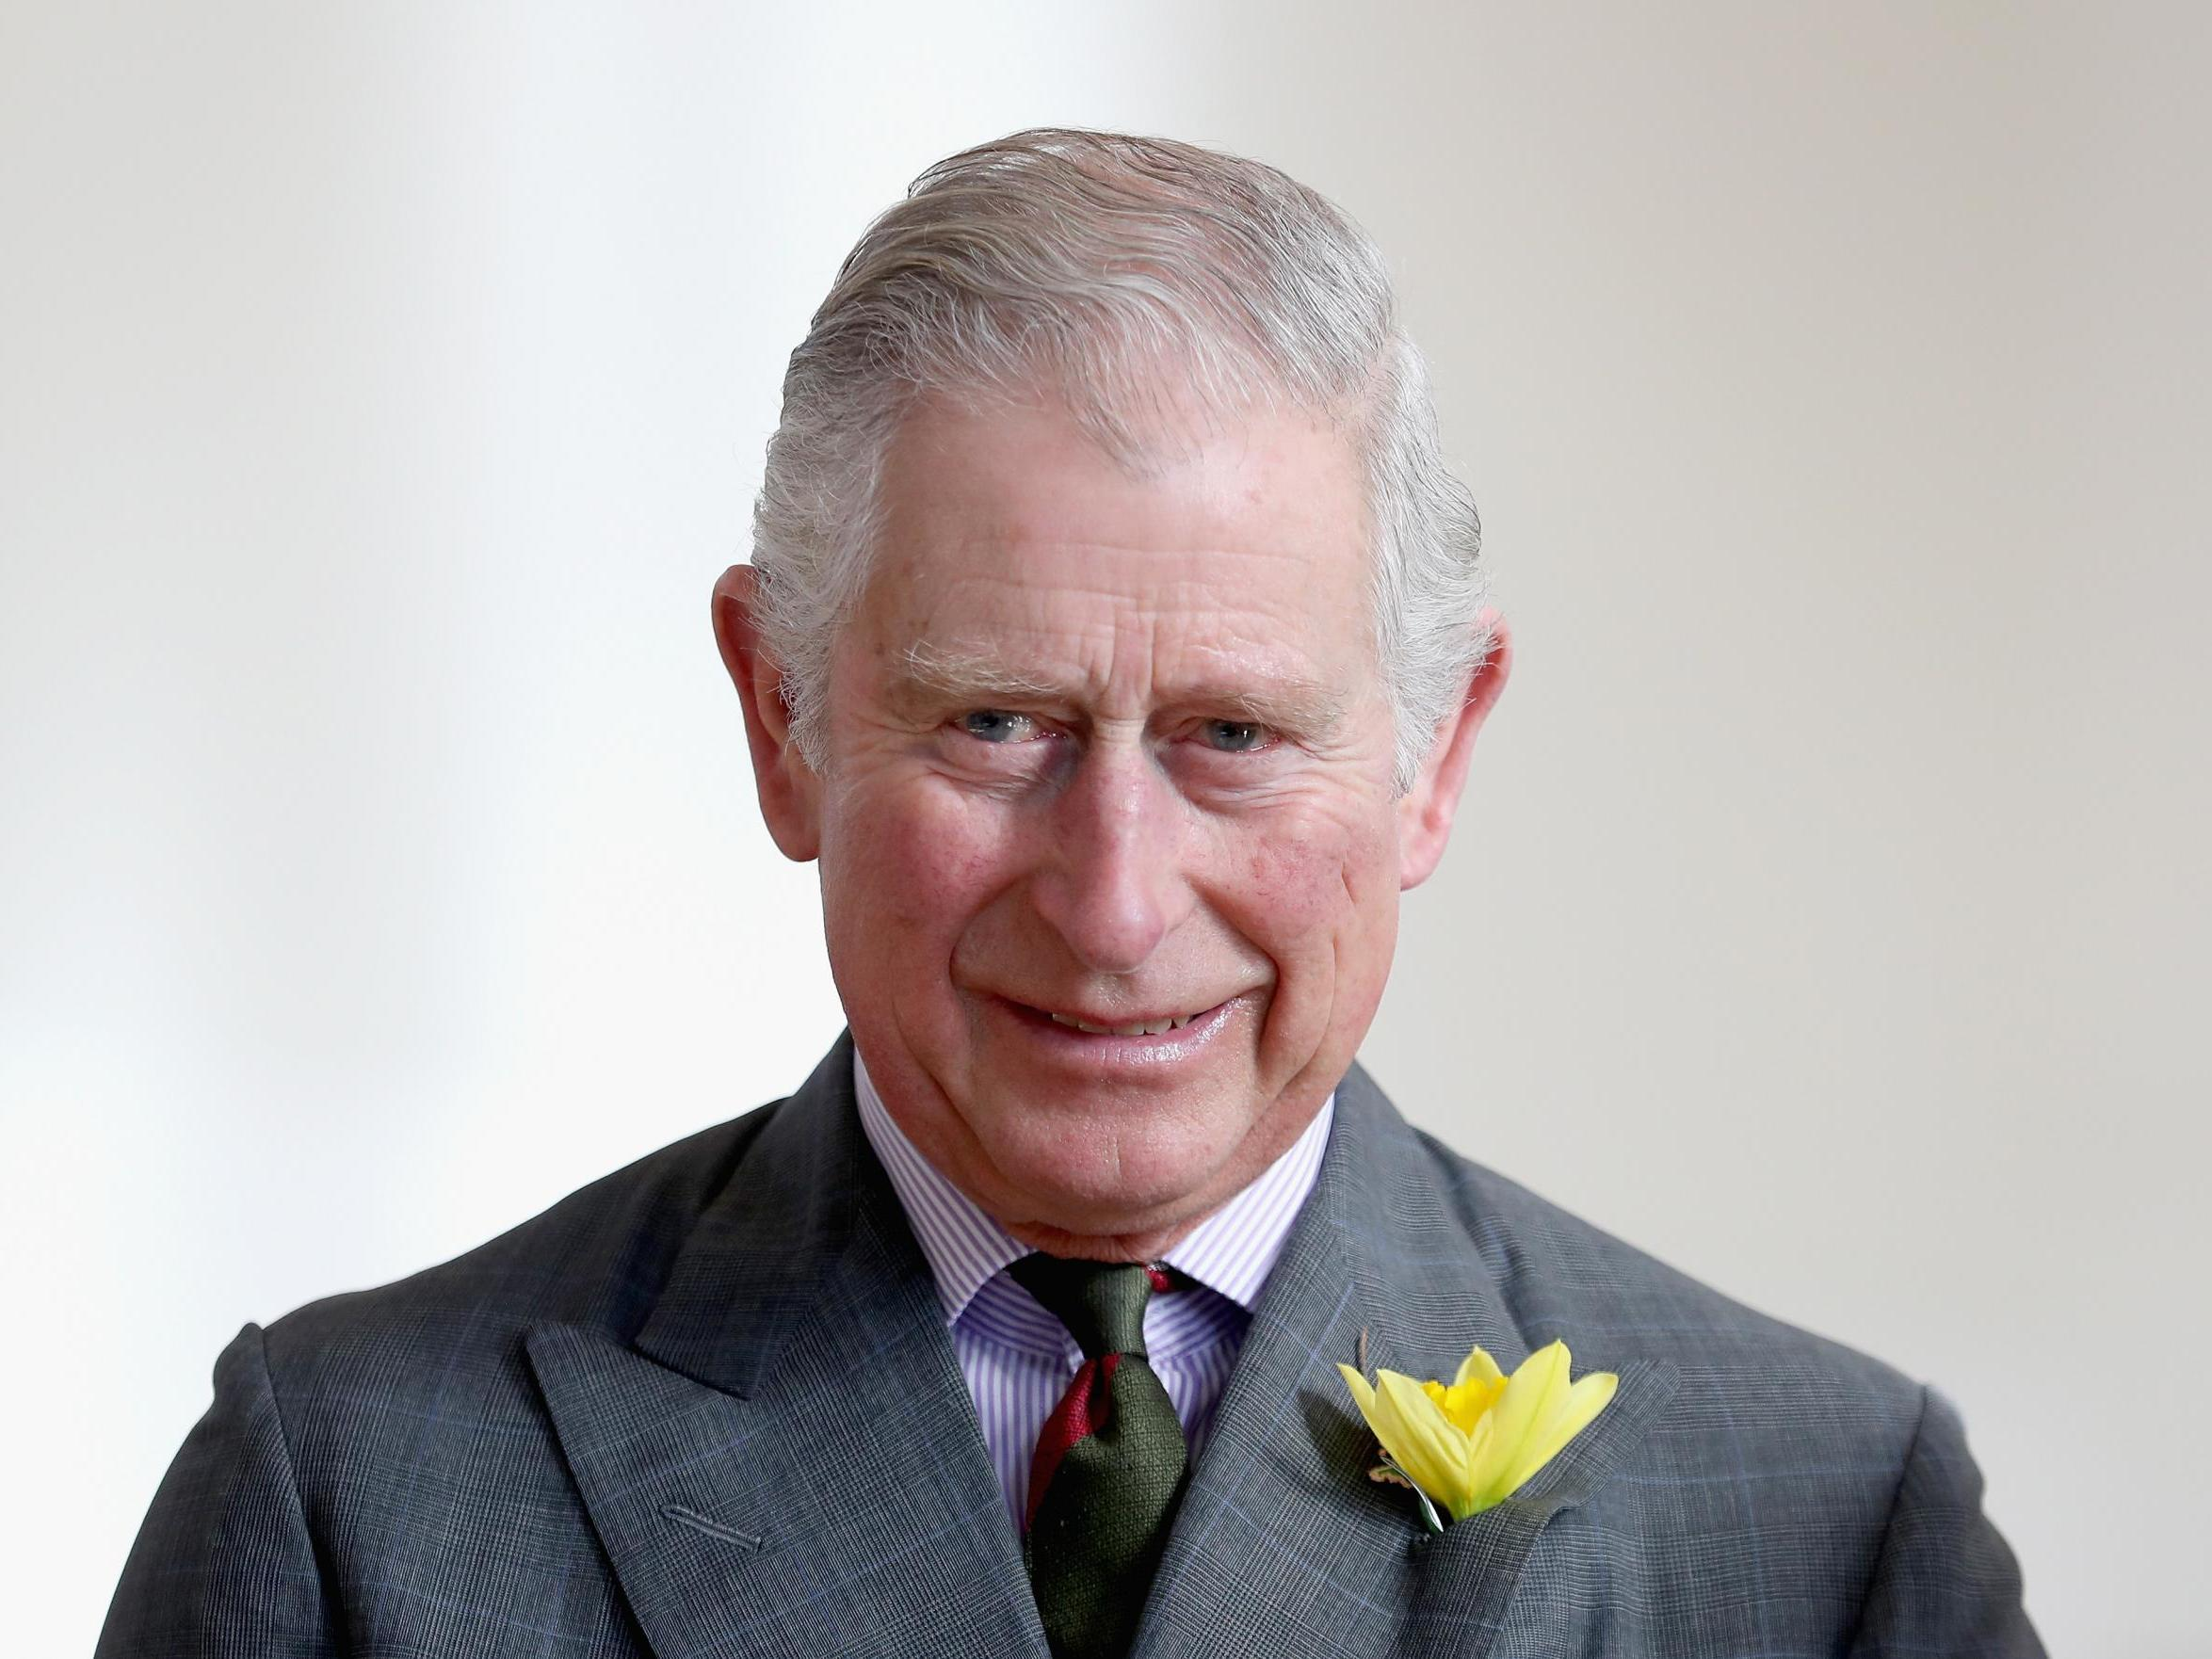 Coronavirus: MSP questions why Prince Charles was tested despite mild symptoms